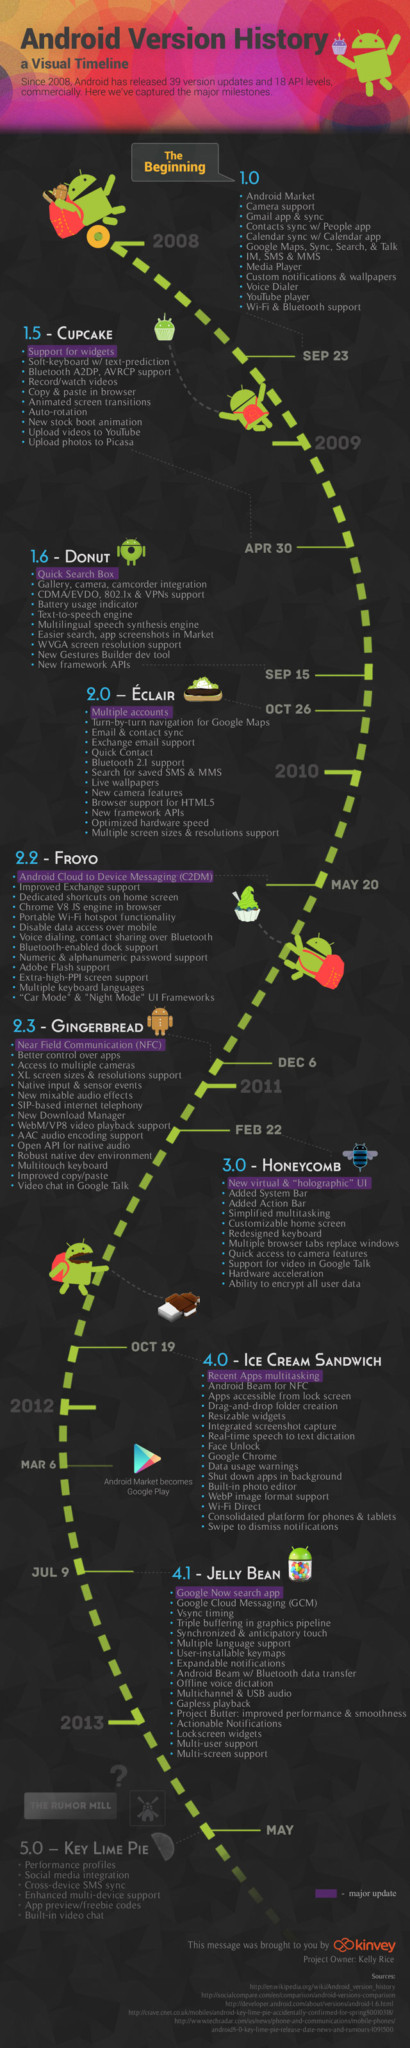 Android-history-infographic-640